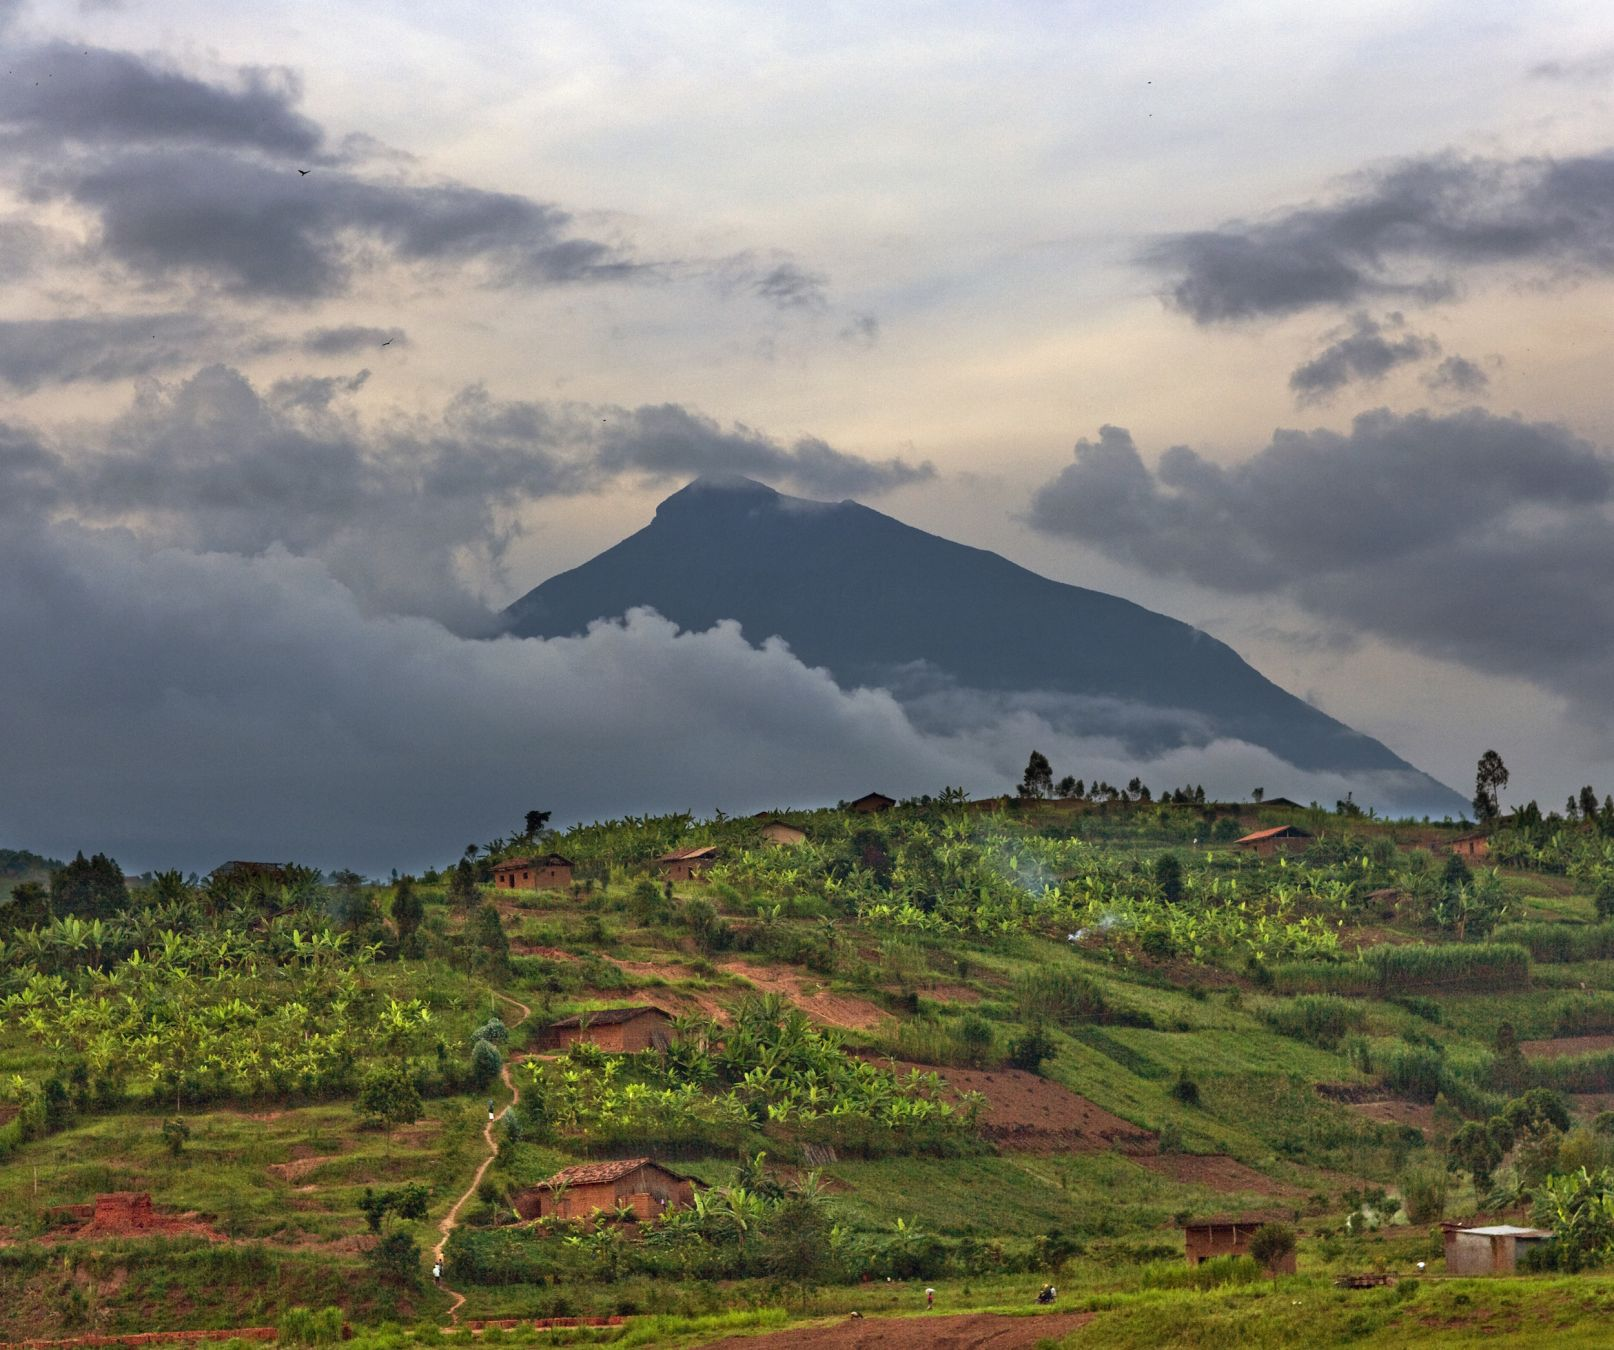 In viaggio tra le mille colline del Ruanda - Lonely Planet